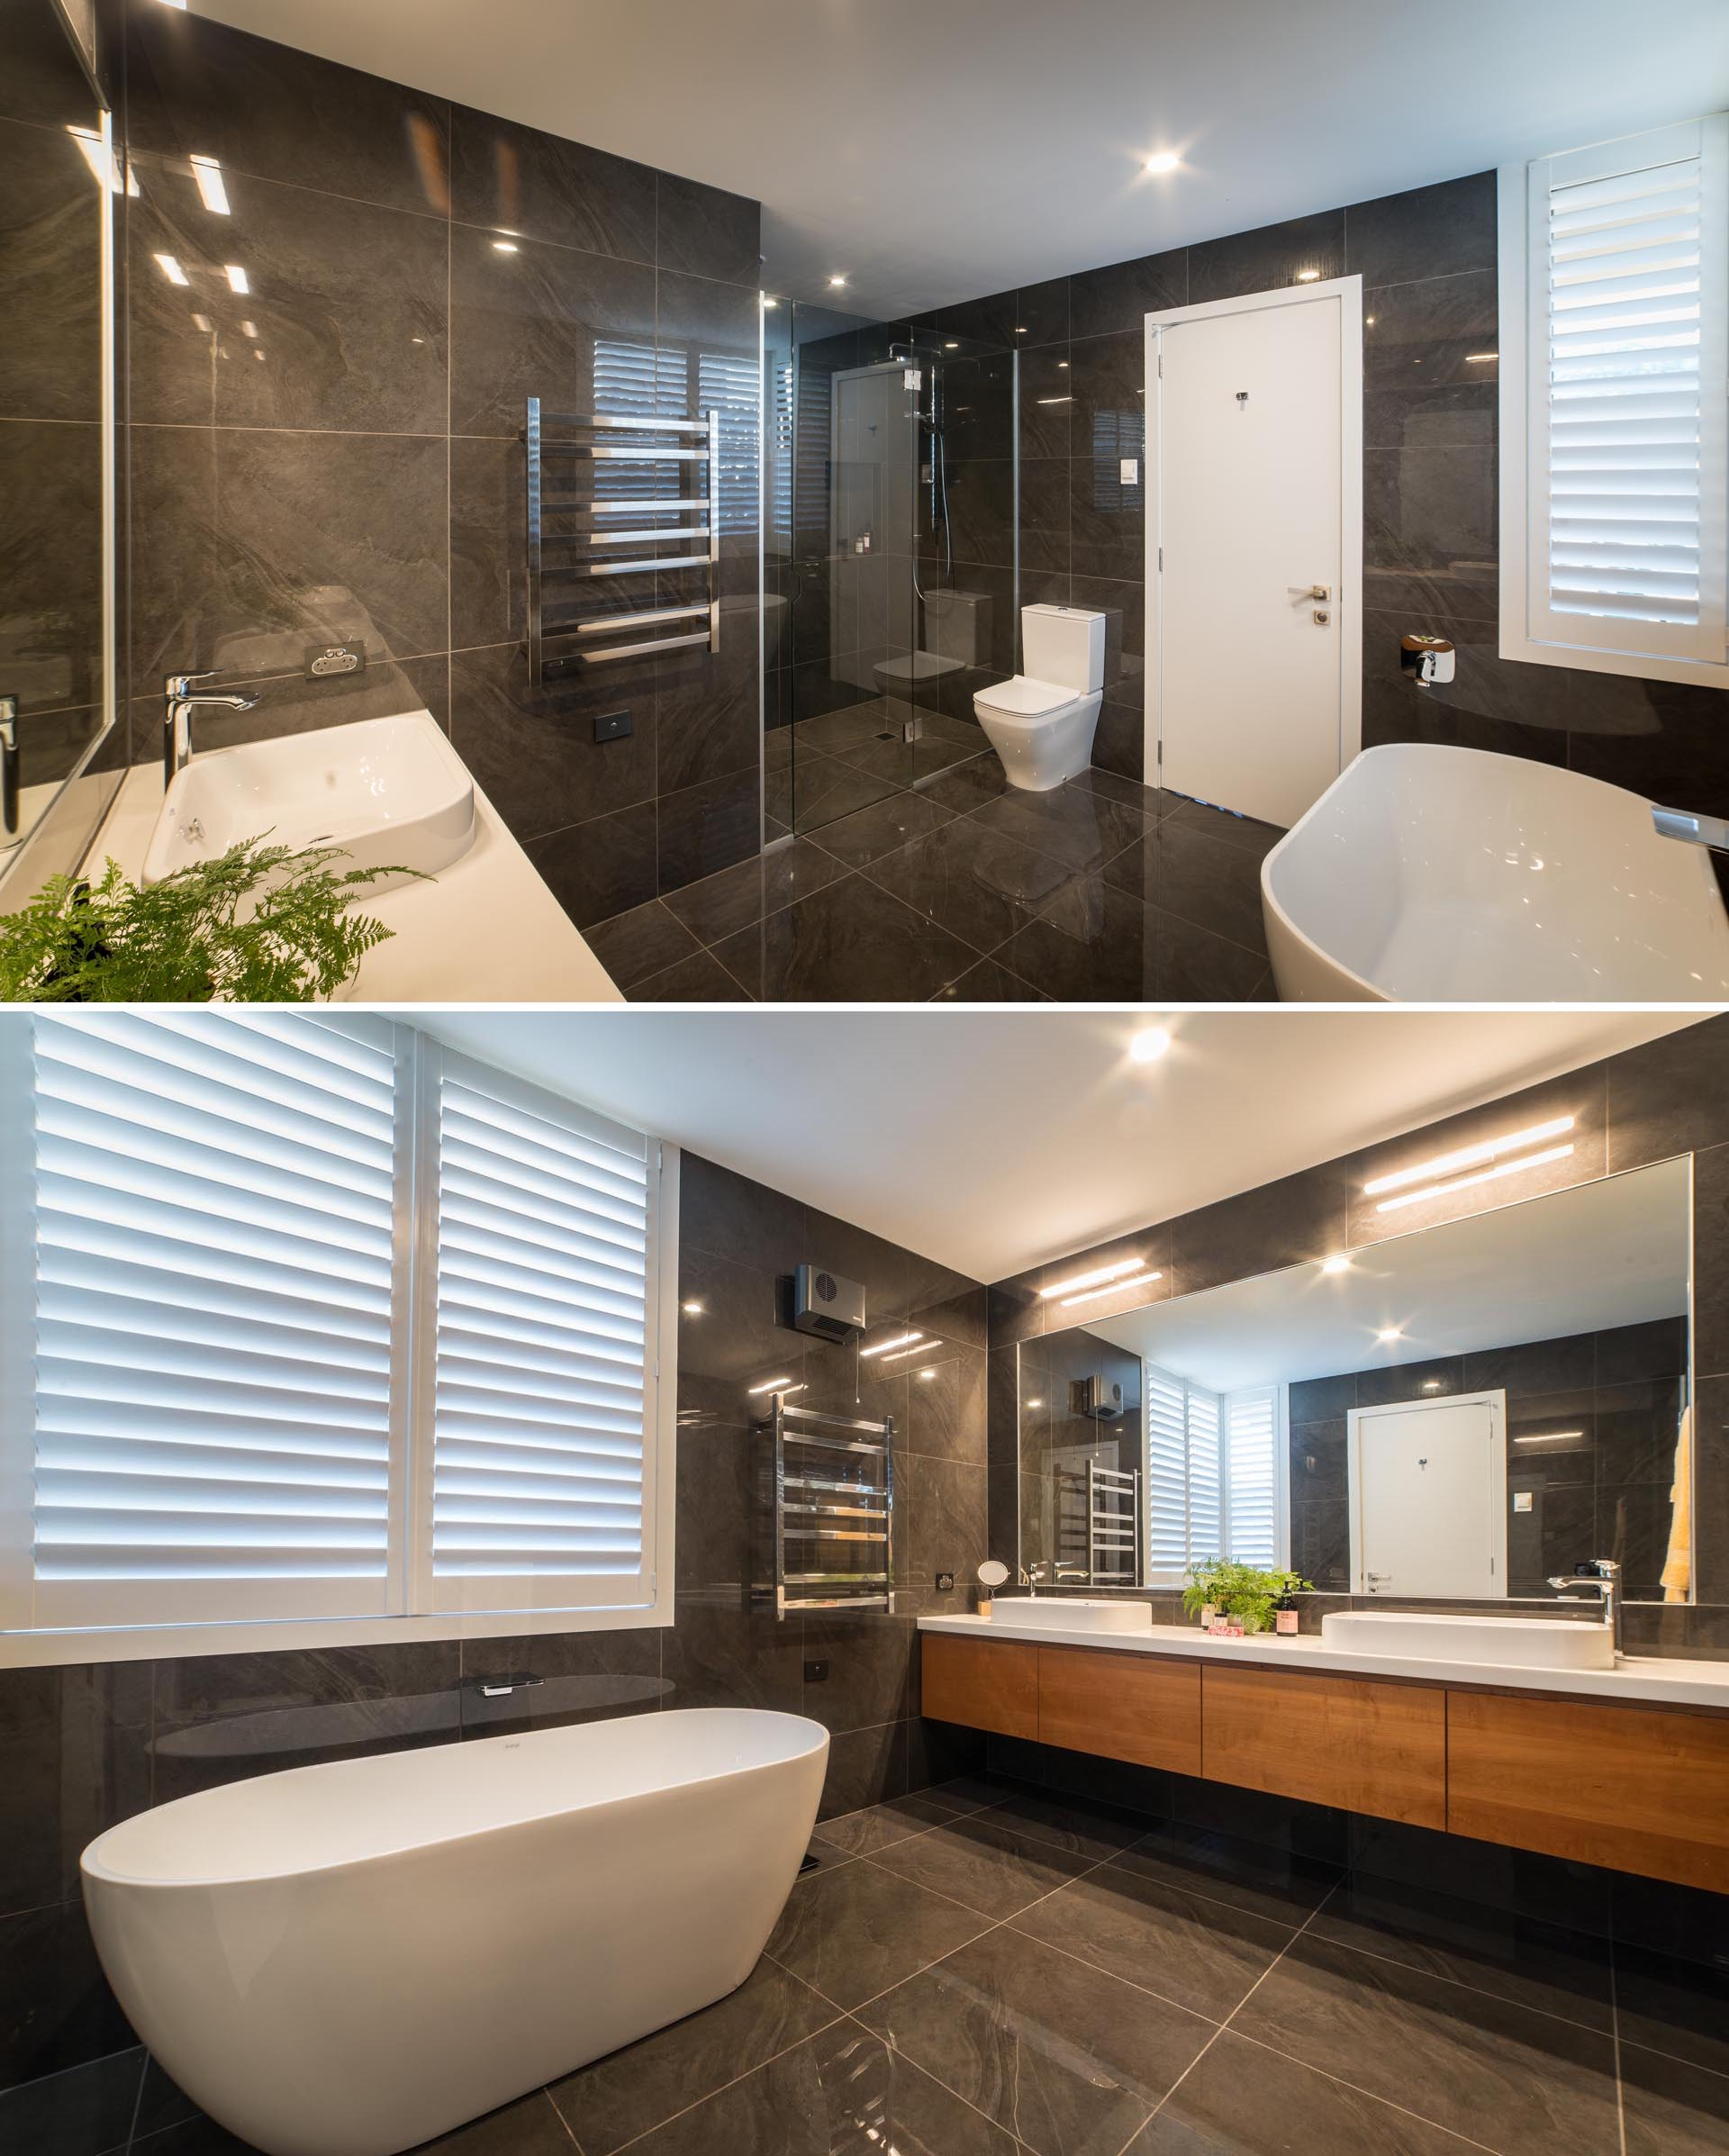 A modern master bathroom with large format dark colored tiles that cover the walls and floor, and a white freestanding bathtub and countertop that provide a contrasting element.